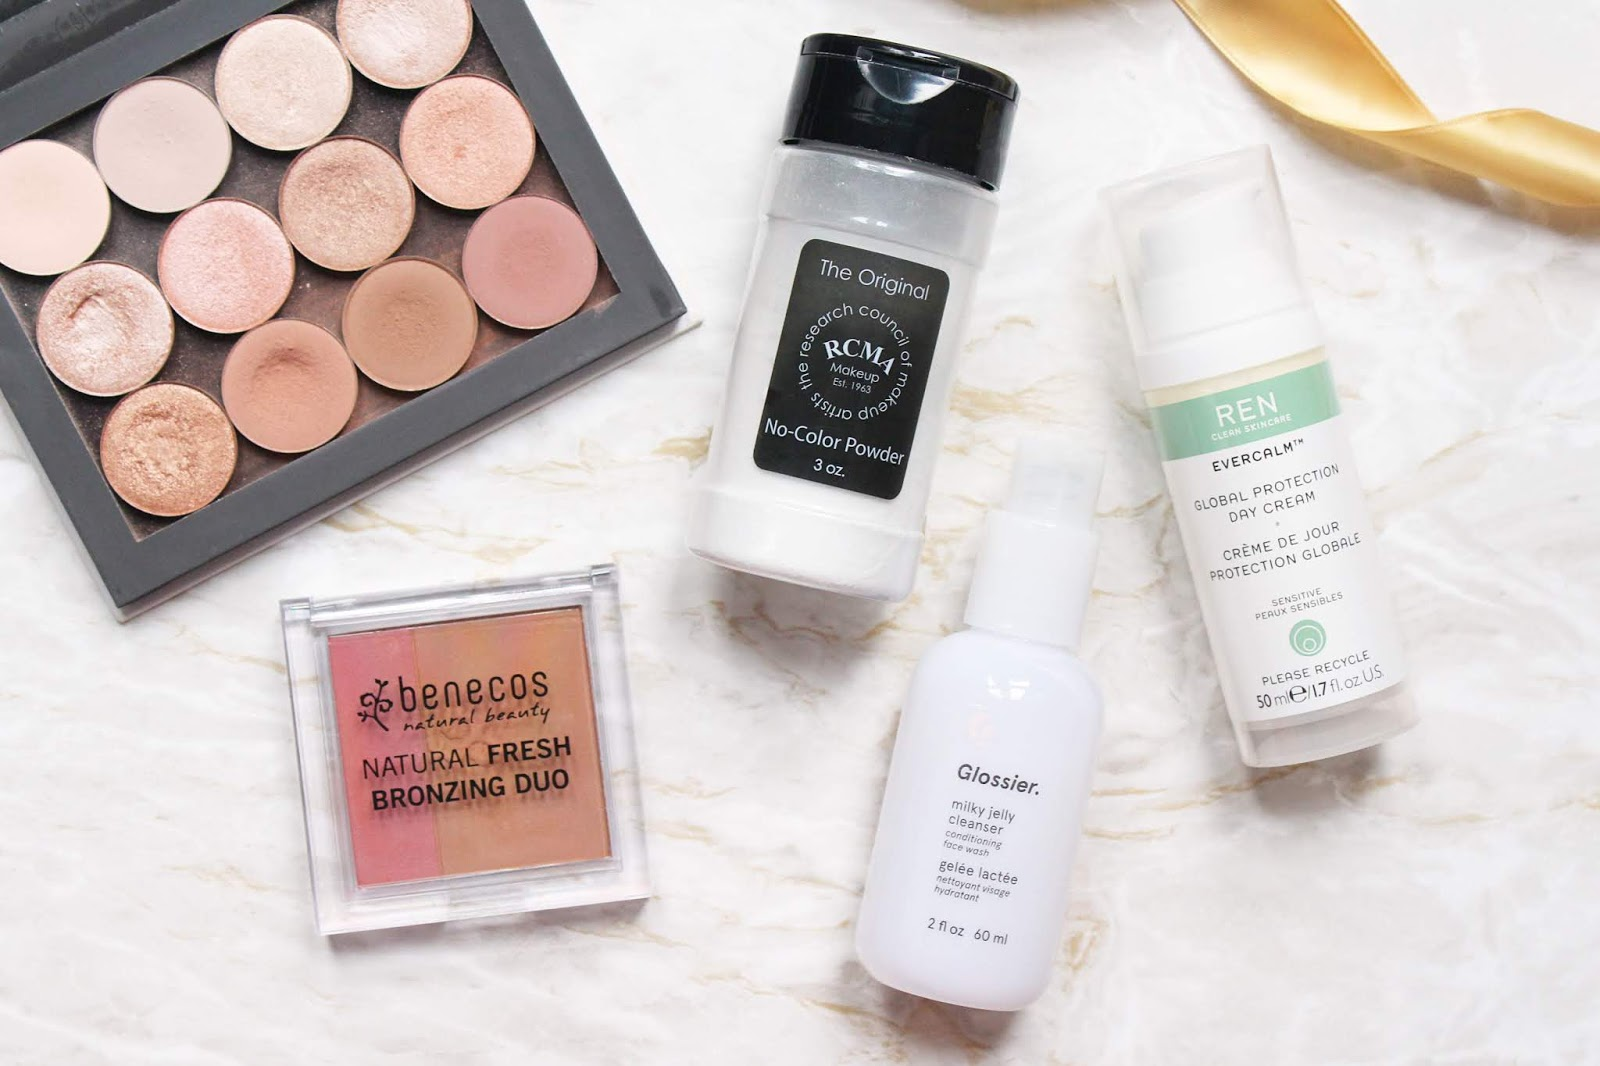 Vegan Beauty Heroes #2